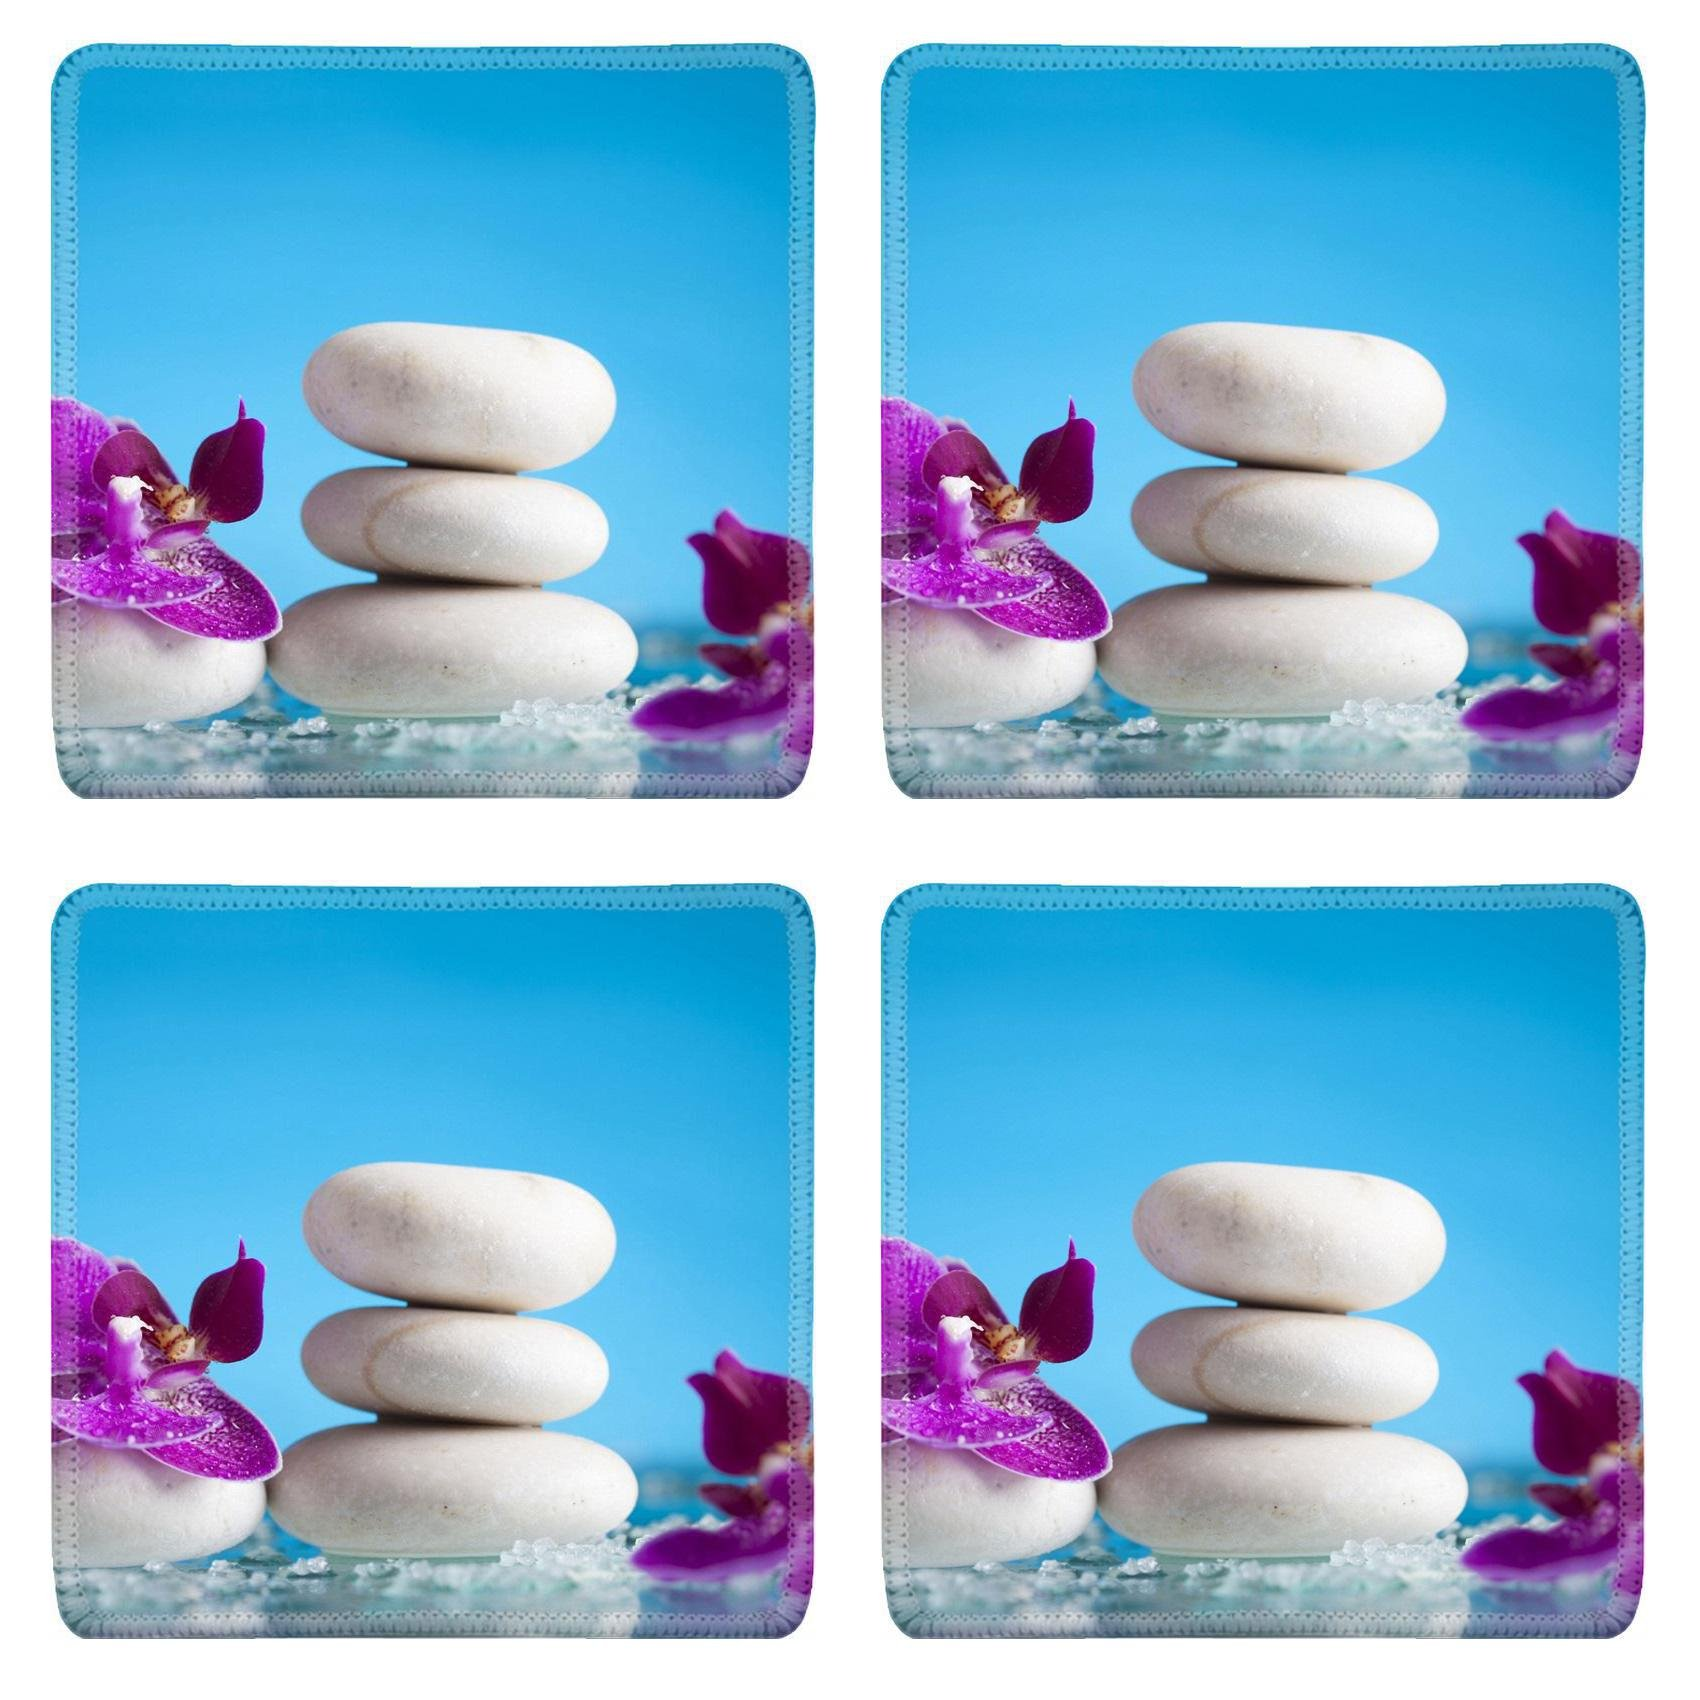 MSD Square Coasters Non-Slip Natural Rubber Desk Coasters design 36433401 Spa still life with pink orchid and white zen stone on blue background